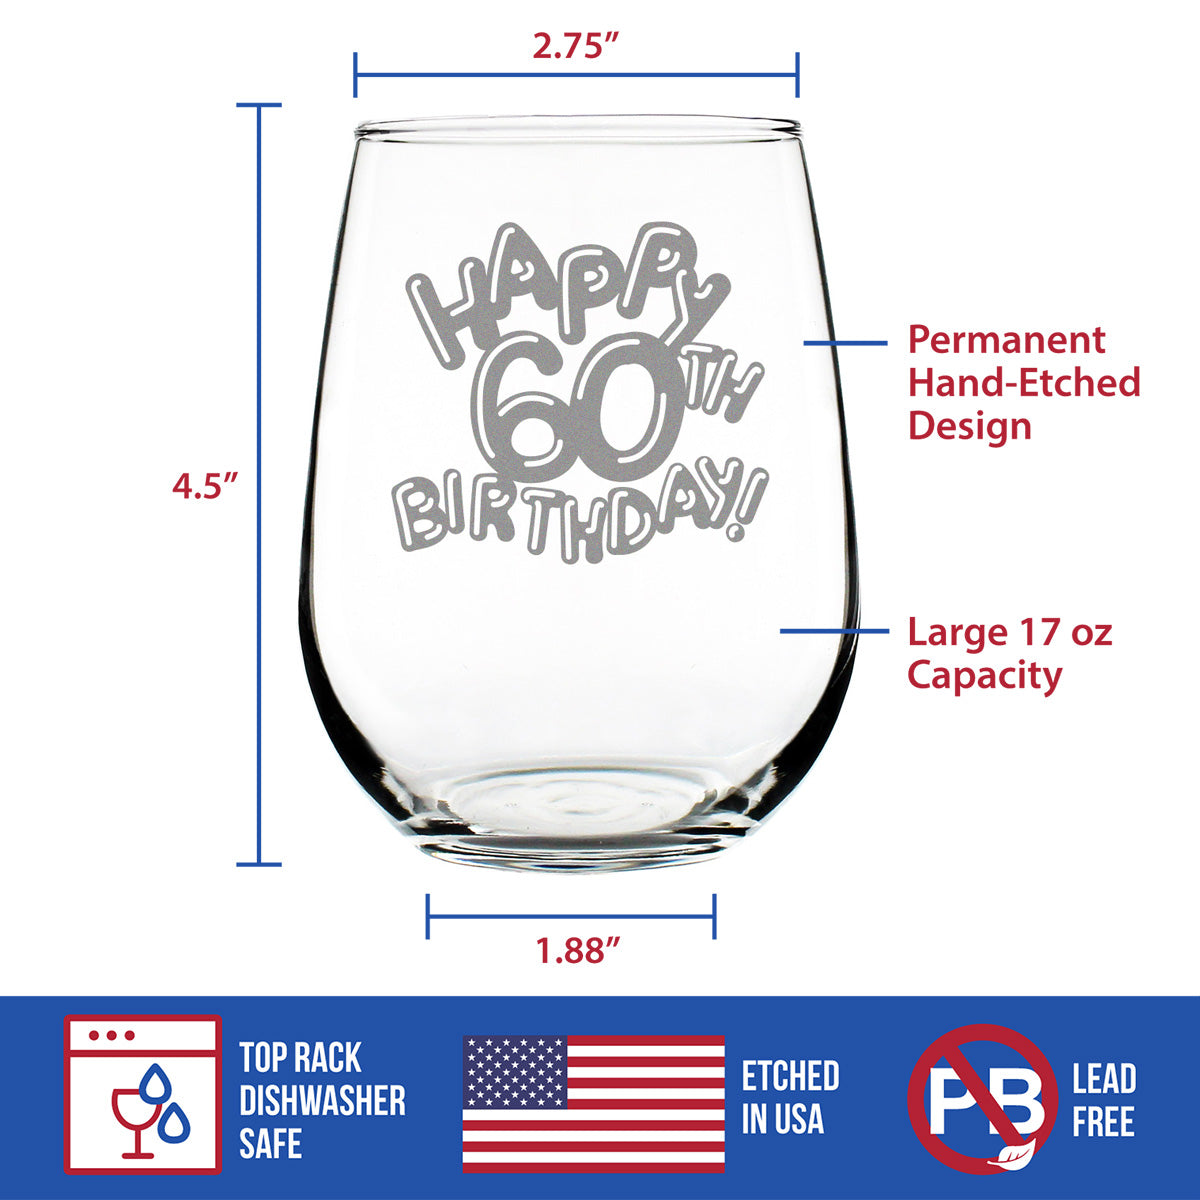 Happy 60th Birthday Balloons - 17 Ounce Stemless Wine Glass